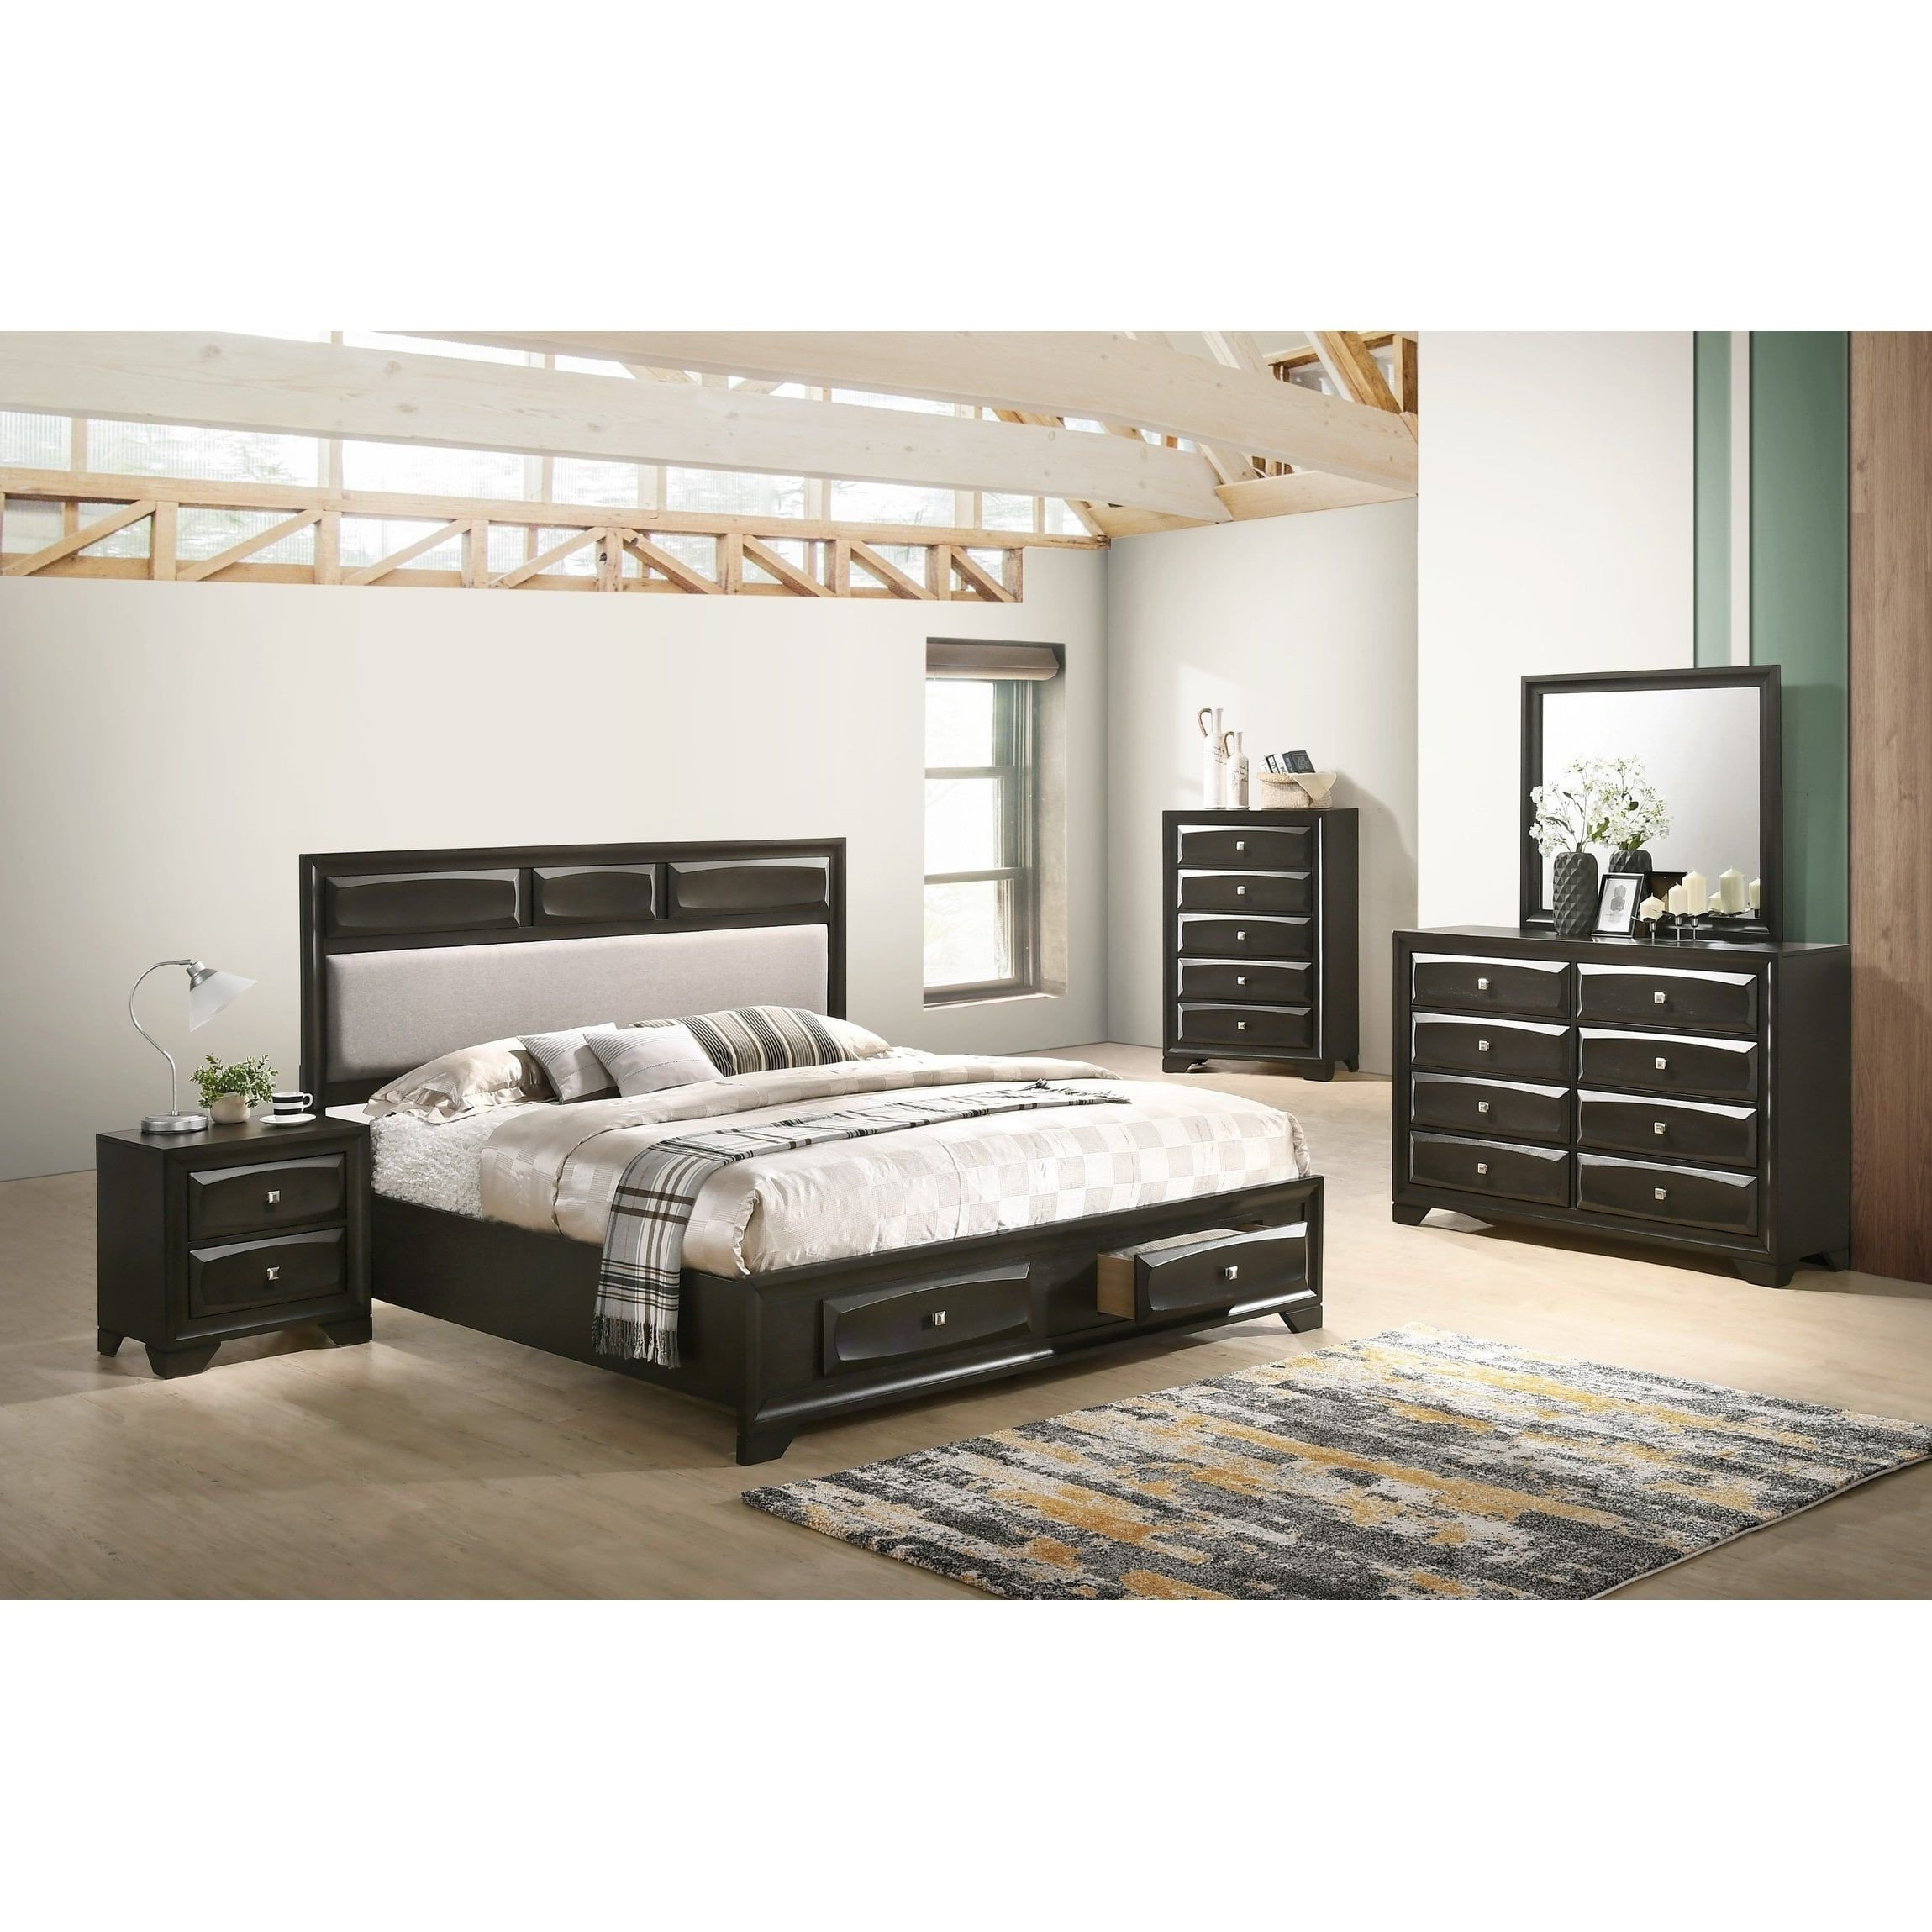 Full Size Bedroom Furniture Set Inspirational Oakland Antique Gray Finish Wood 5 Pc King Size Bedroom Set